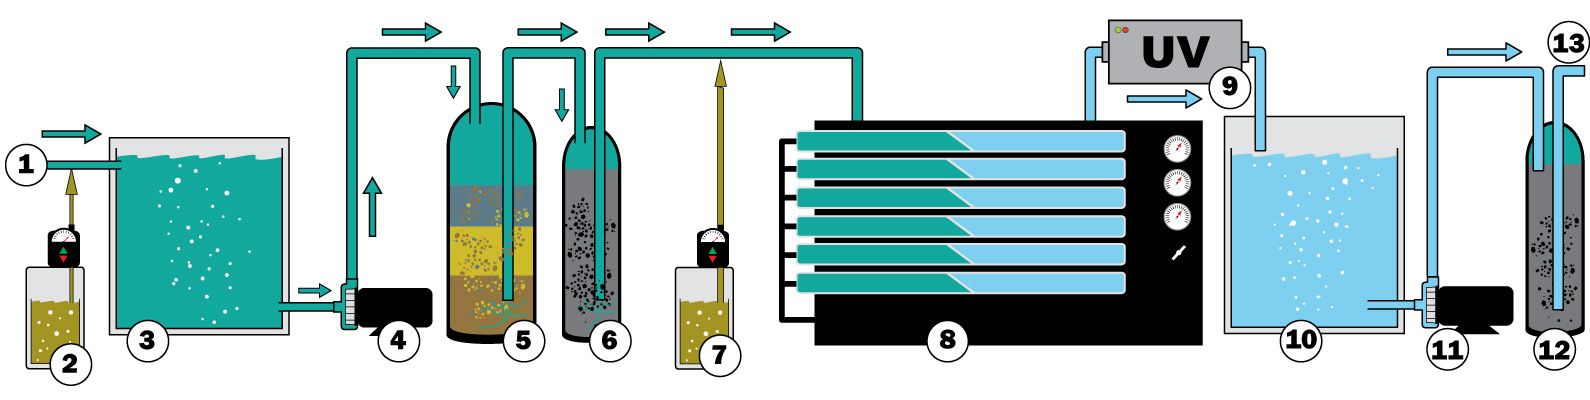 commercial seawater watermaker system process schematic diagram